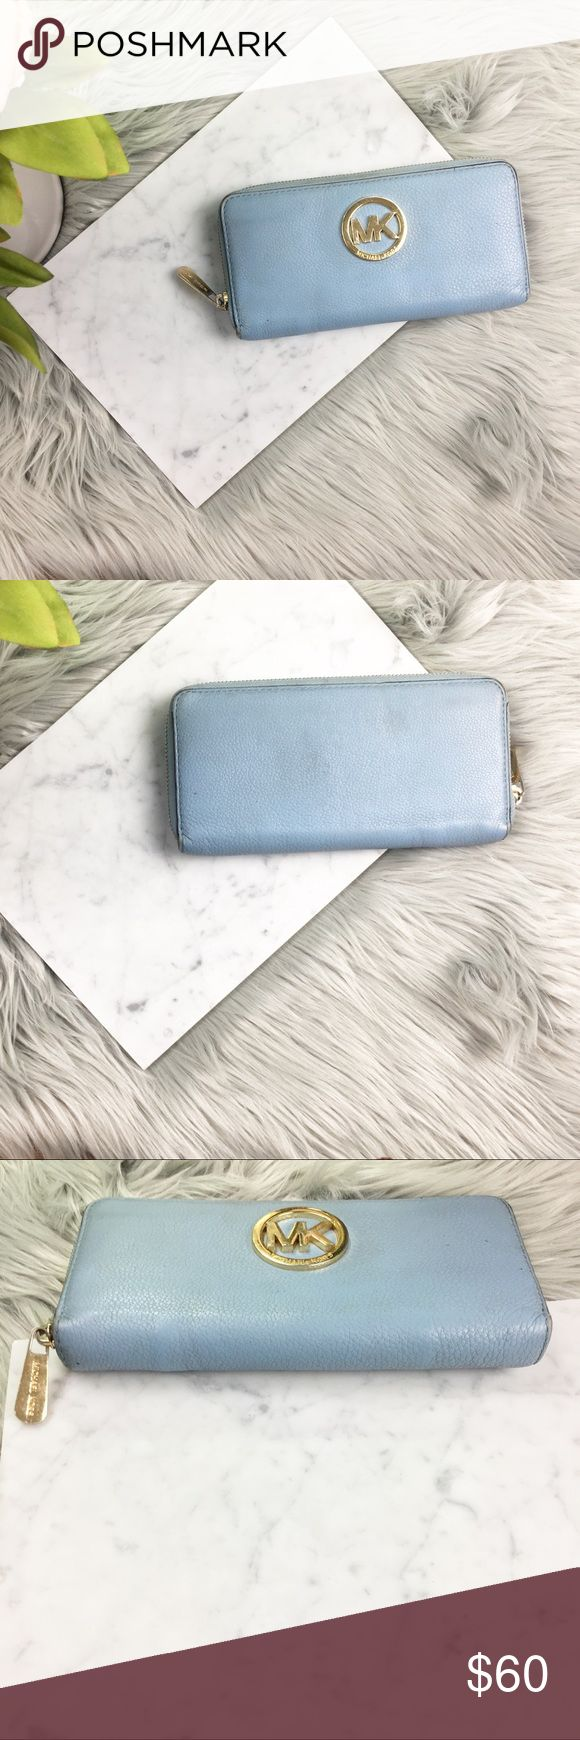 """Michael Kors Fulton lt blue  continental wallet Classic and functional wallet in a lovely powder blue. Logo gold hardware. zip up closure keeps everything secure.   - 8 card slots - inner zipper pocket - Leather , color: powder blue  - 8-1/4"""" W x 4"""" H x 3/4"""" D - Top zip closure  Condition: Pre owned. Some minor general wear on exterior logo. Interior is spotless. This wallet is in great condition Michael Kors Bags Wallets"""